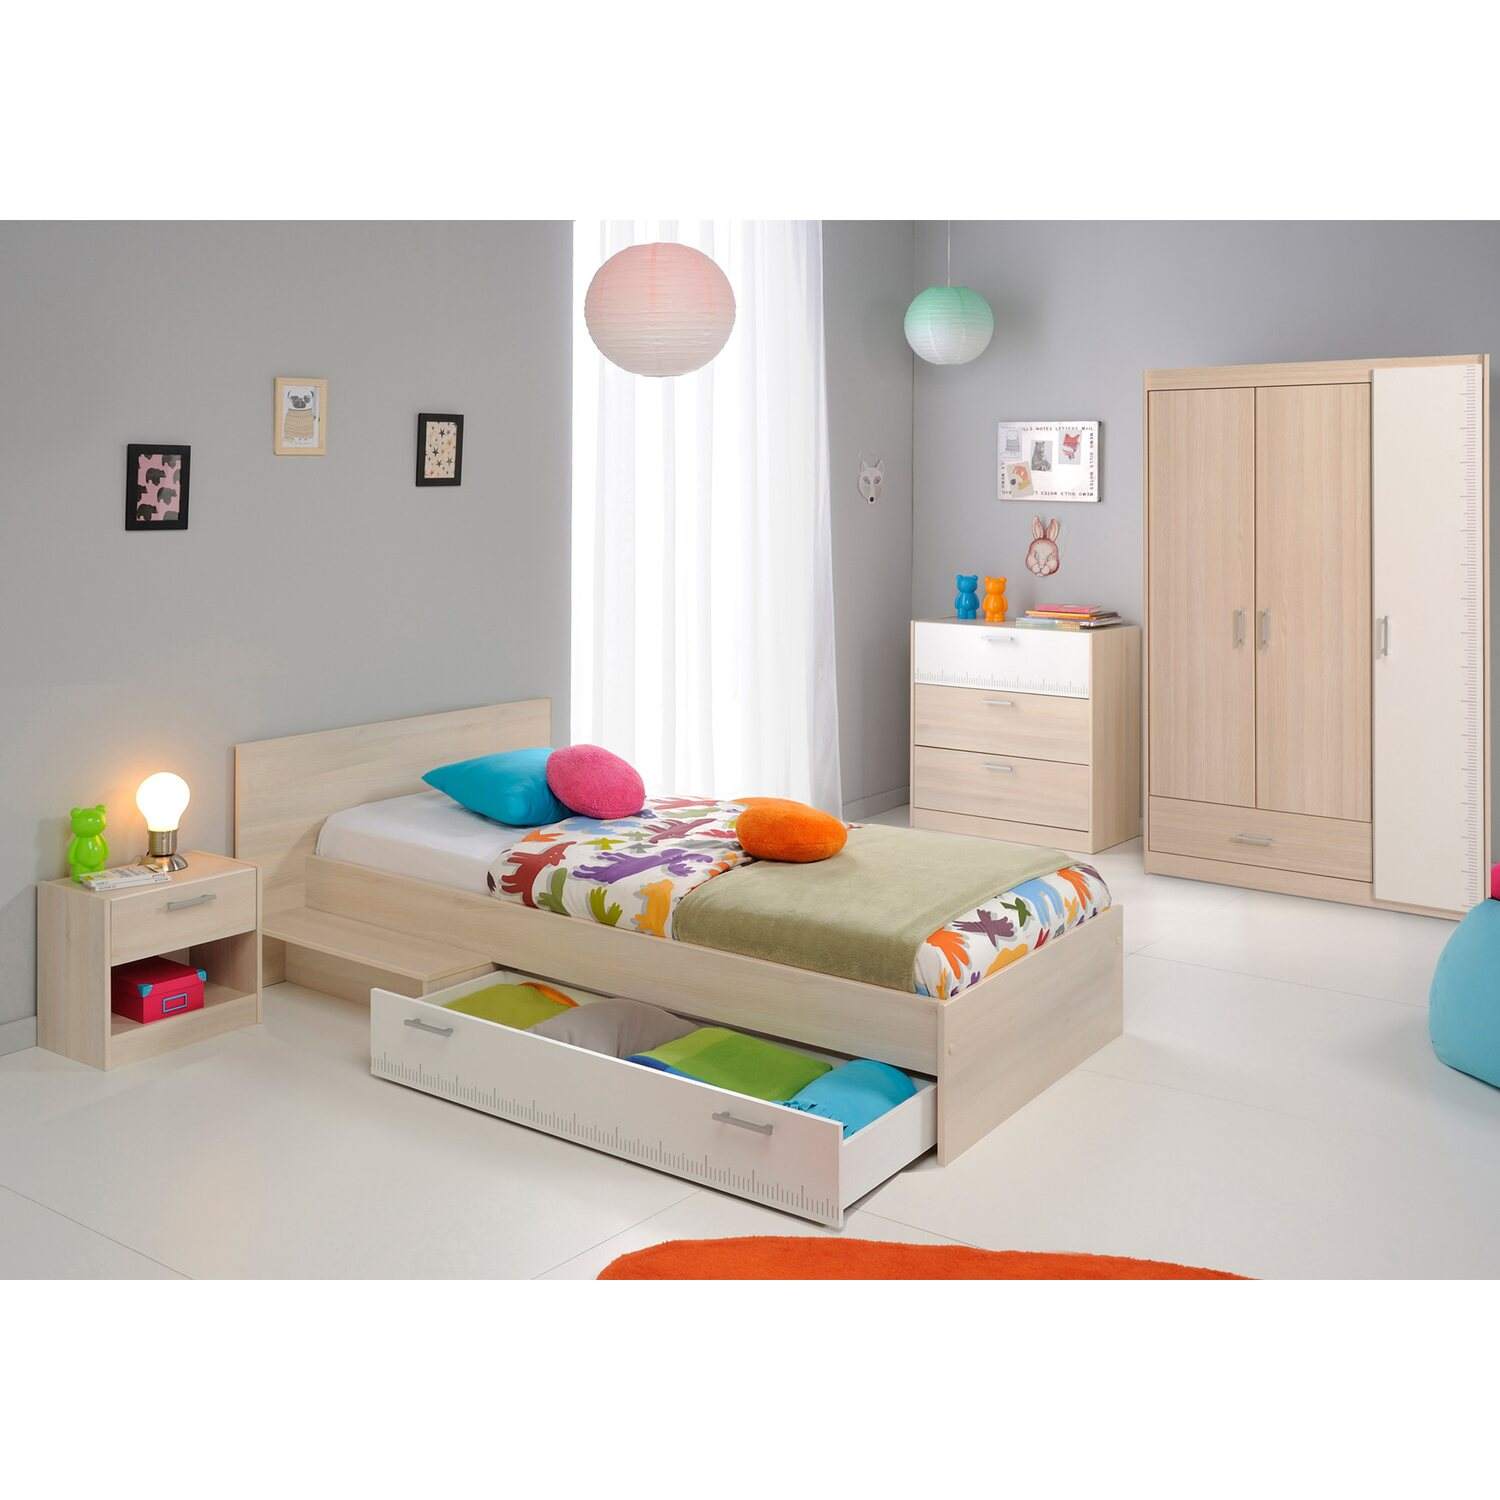 parisot kinderzimmer set 5 teilig charly iii akazie wei kaufen bei obi. Black Bedroom Furniture Sets. Home Design Ideas